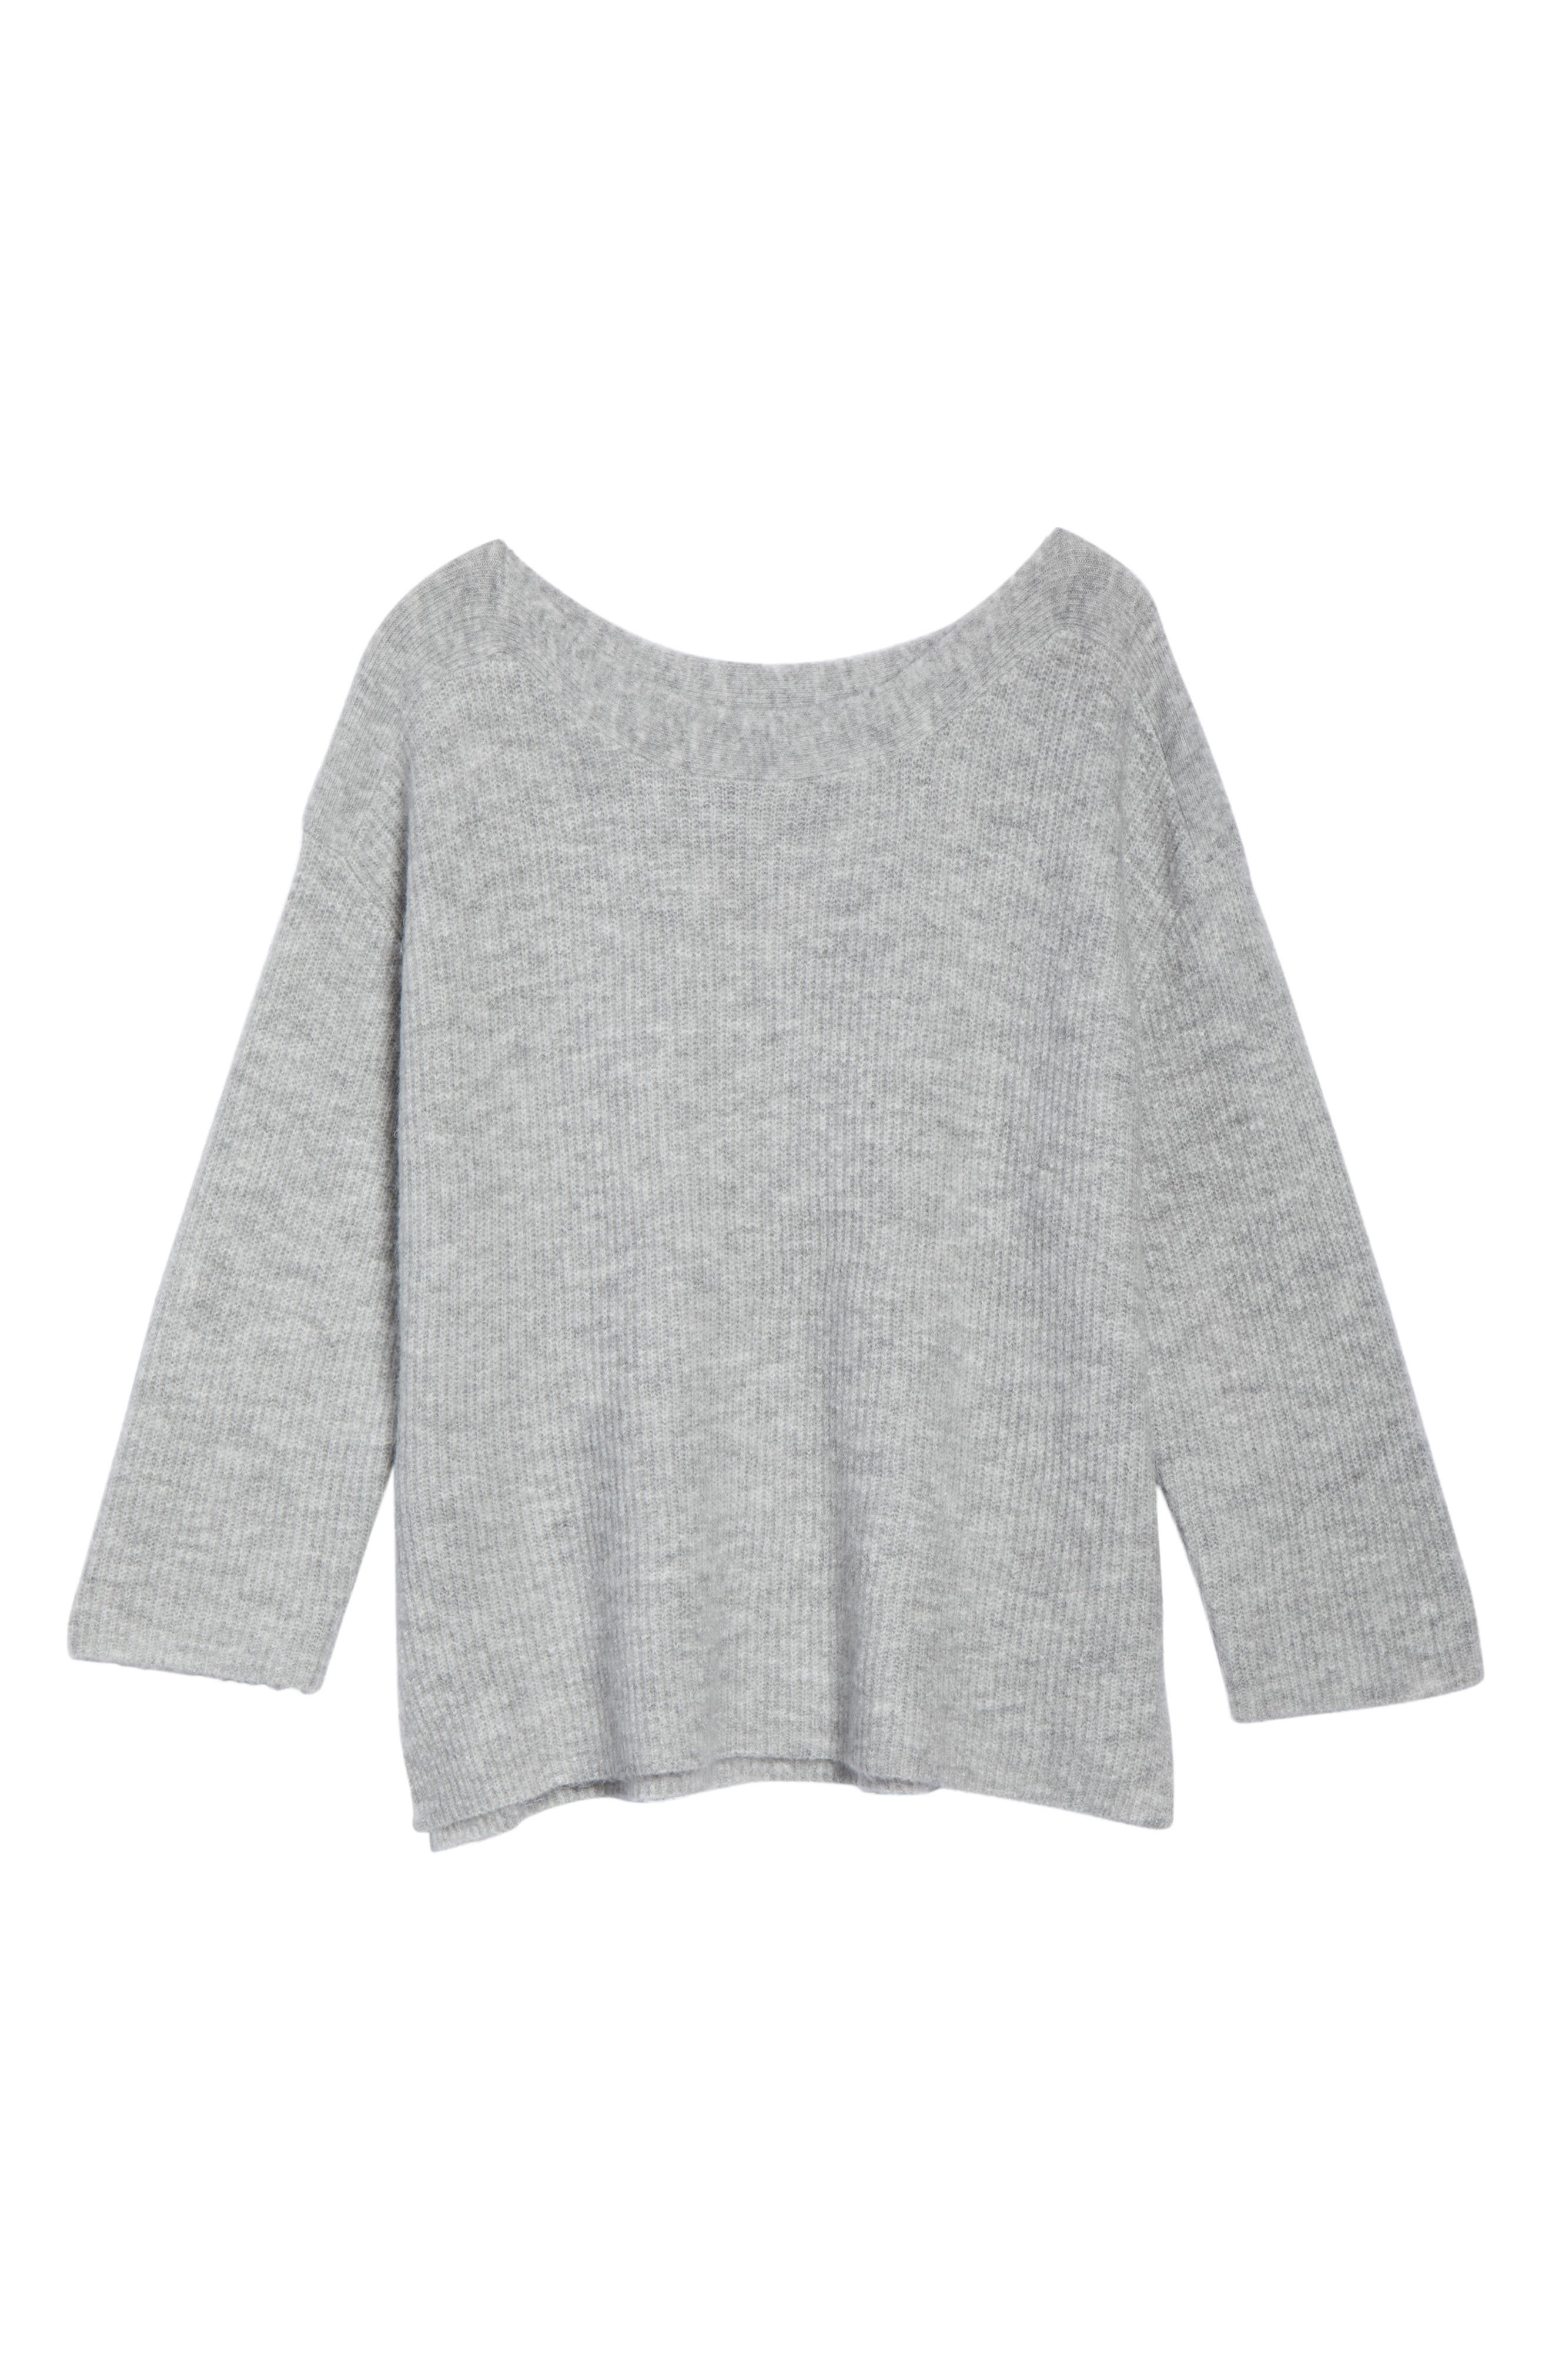 Cozy Femme Pullover Sweater,                             Alternate thumbnail 6, color,                             031